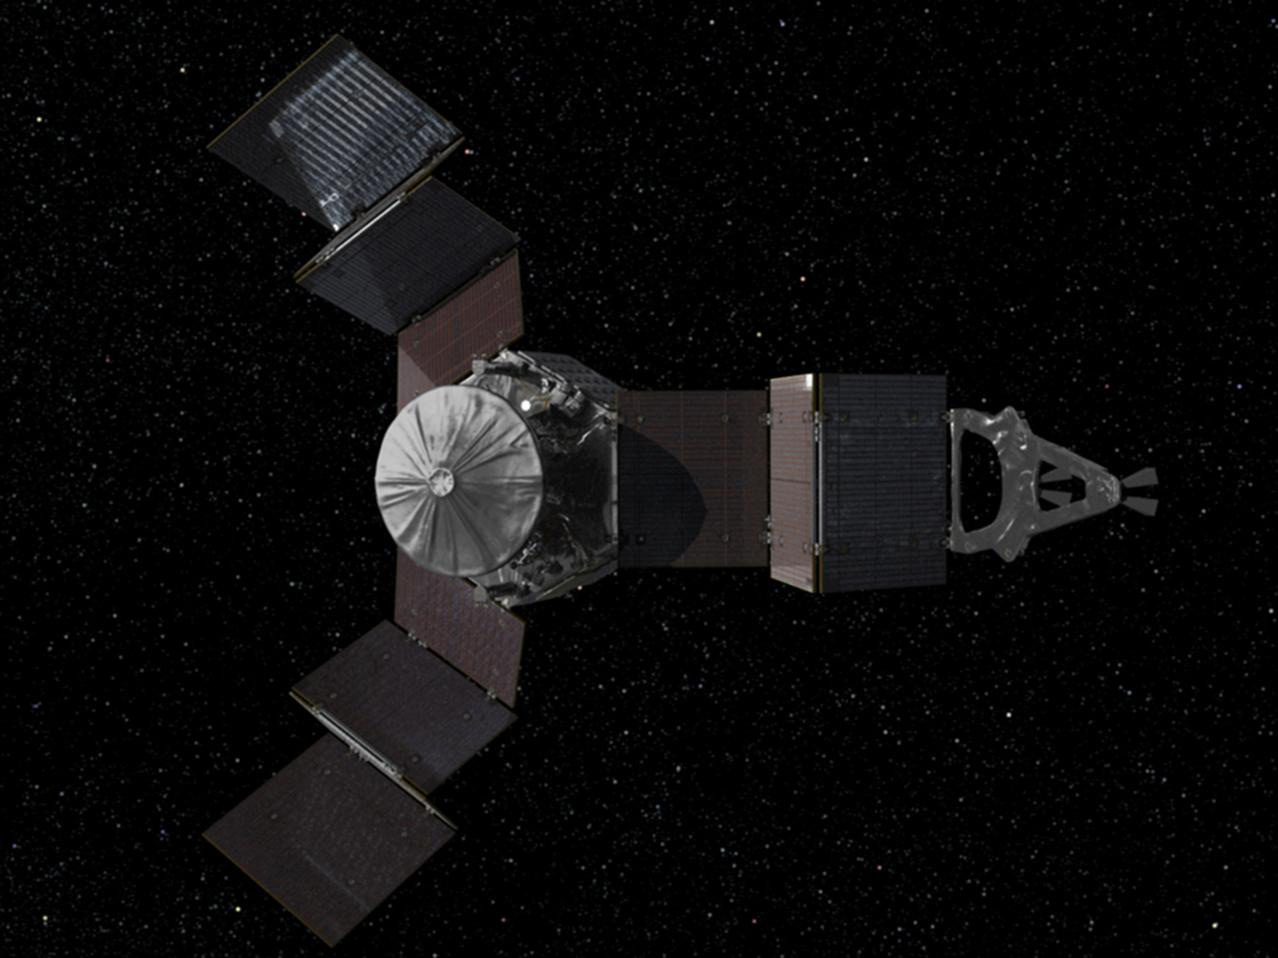 juno nasa project - photo #15